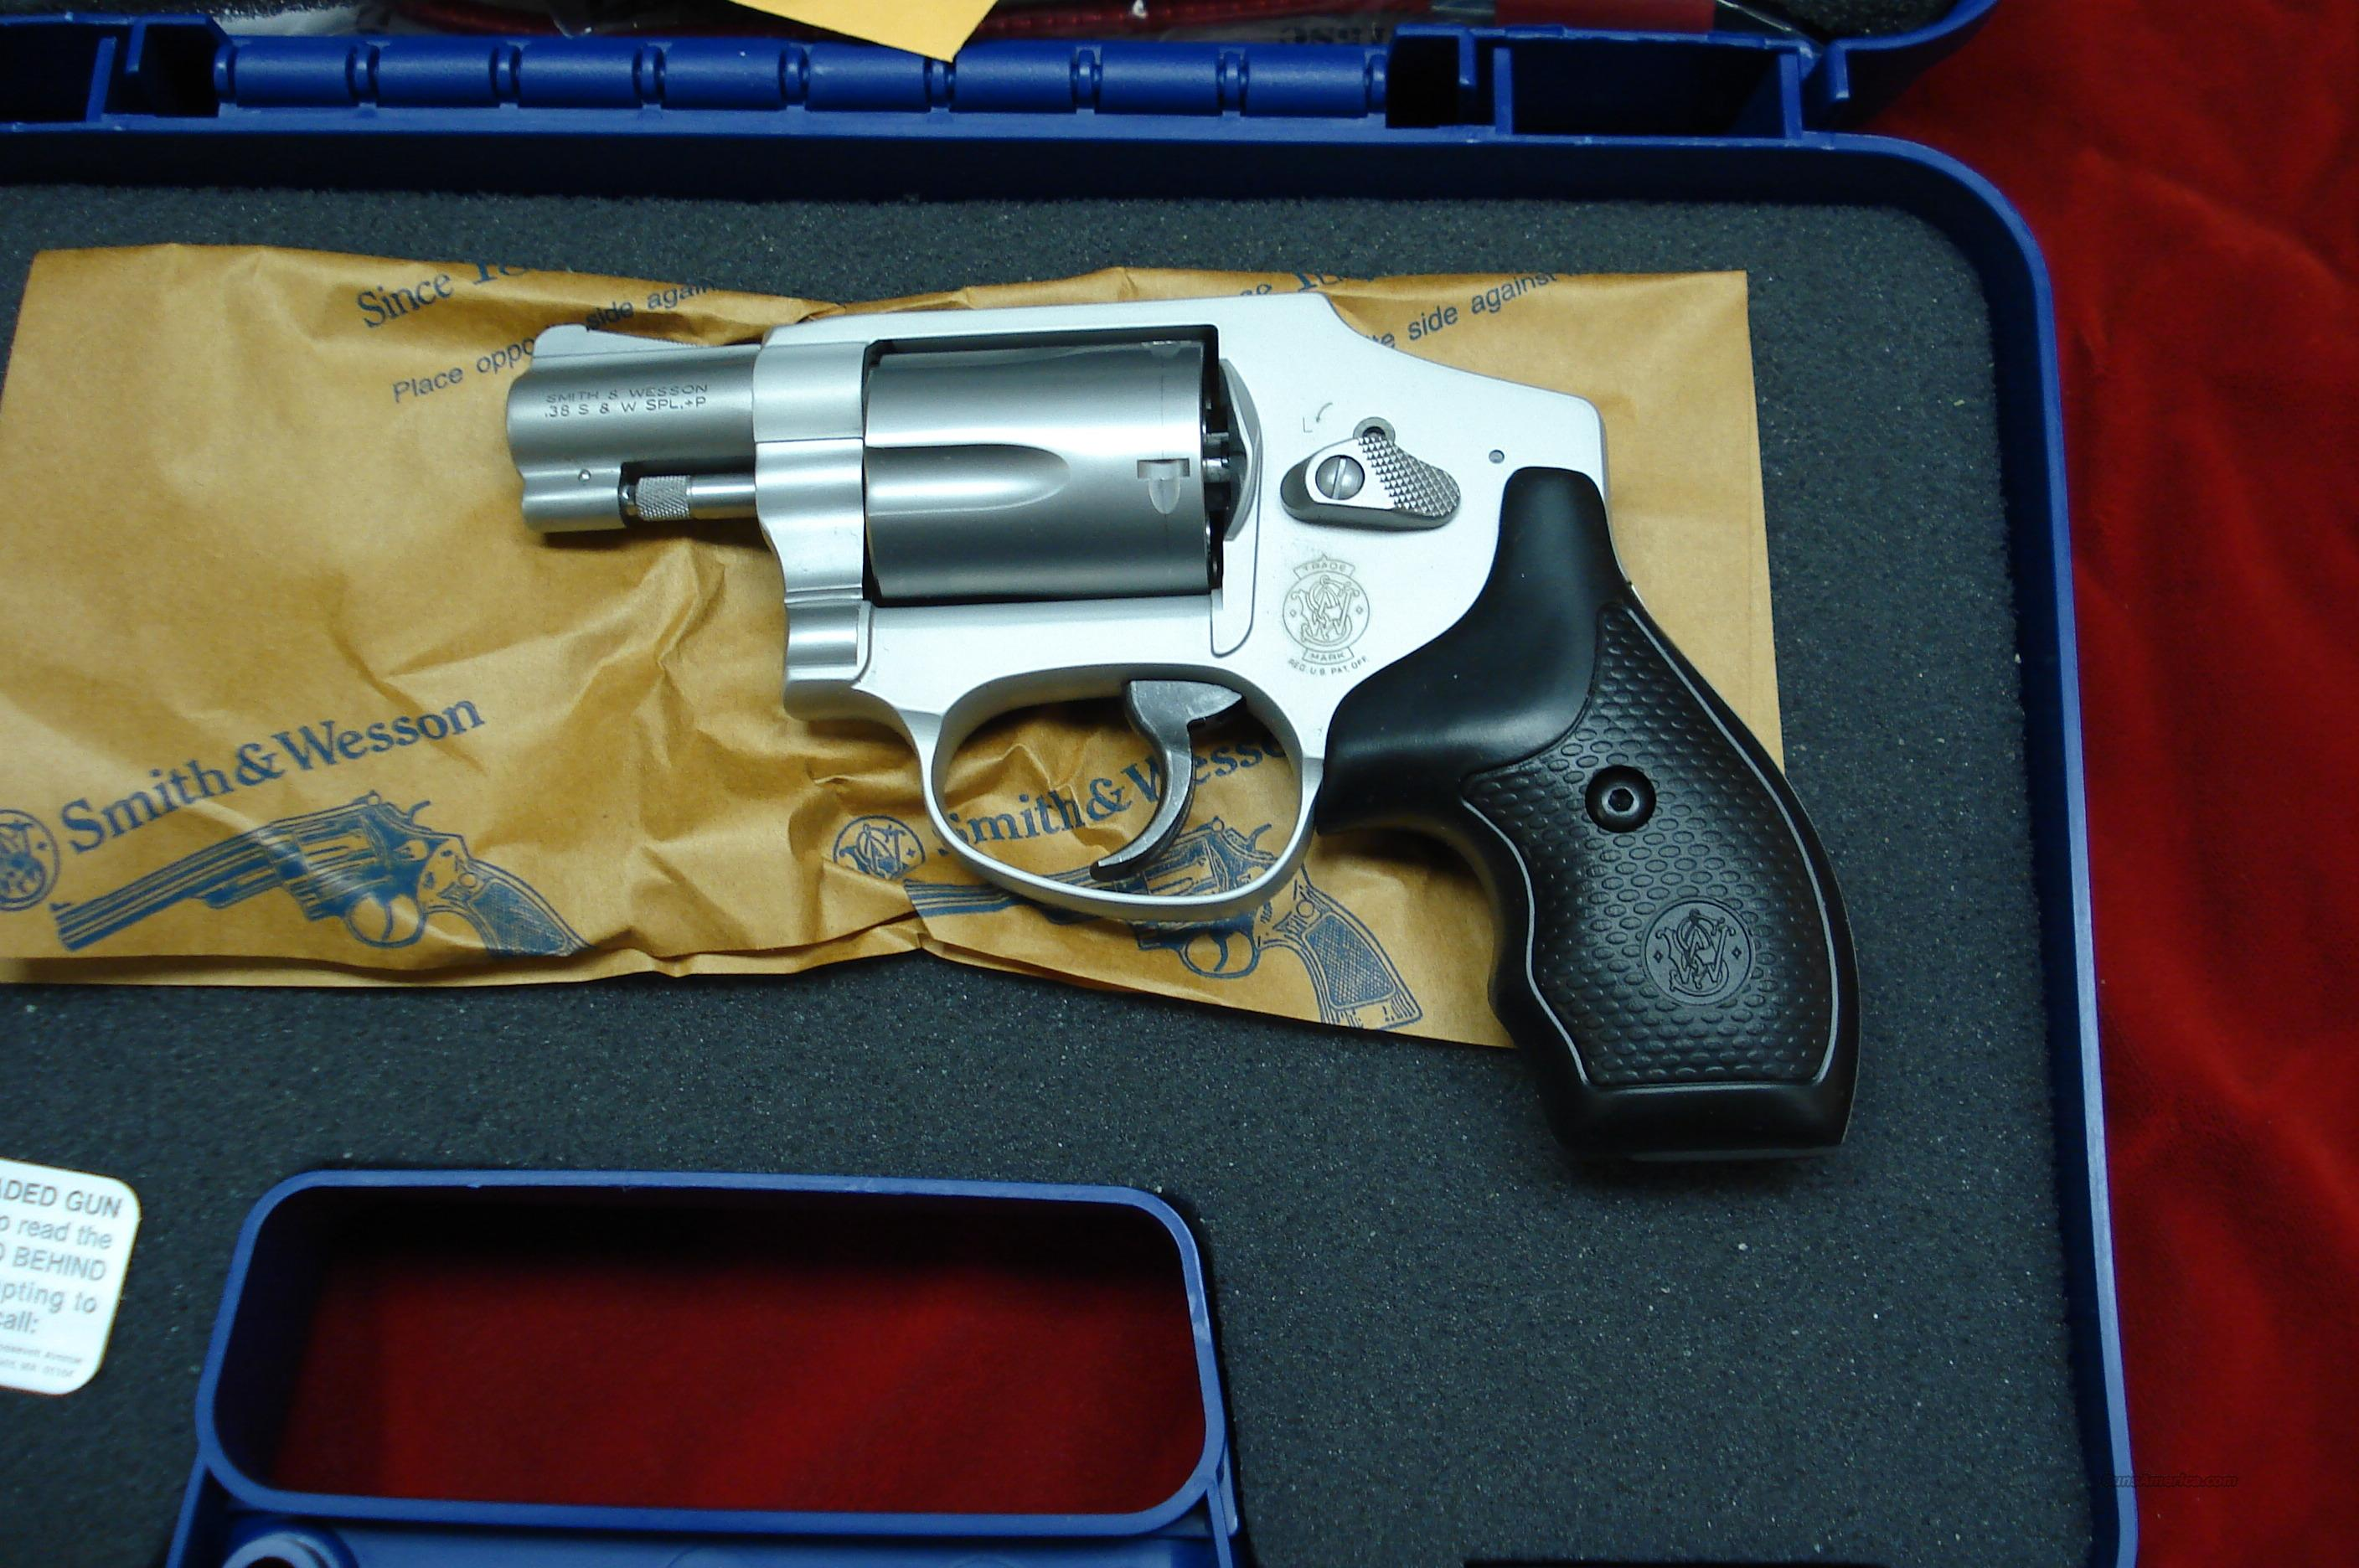 "SMITH AND WESSON 642 AIRWEIGHT SPECIAL "" FREEDOM PROTECTORS "" NEW    Guns > Pistols > Smith & Wesson Revolvers > Pocket Pistols"